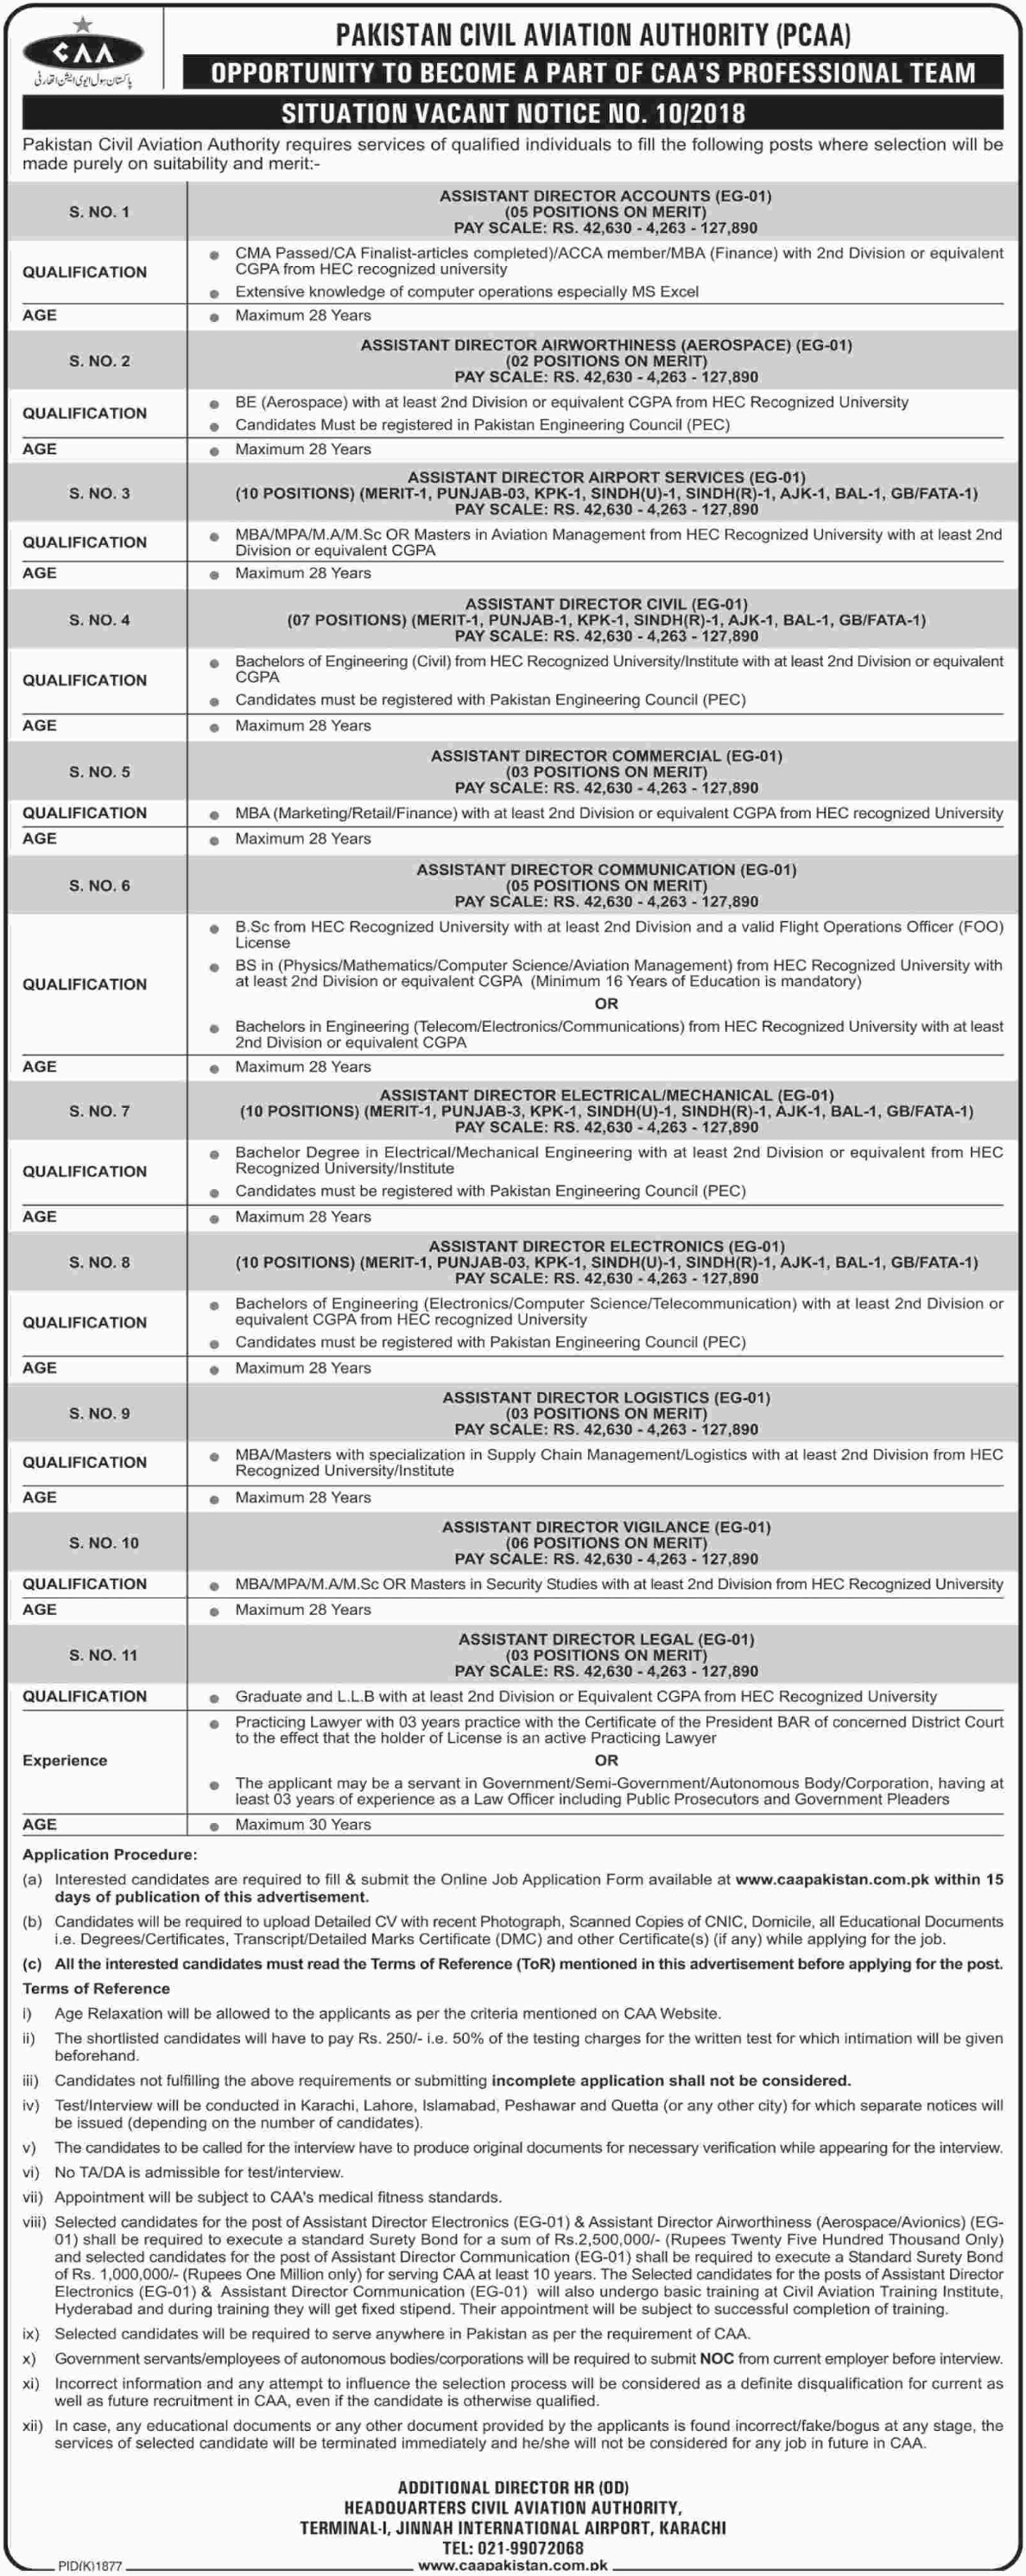 Pakistan Civil Aviation Authority Jobs Latest 2018